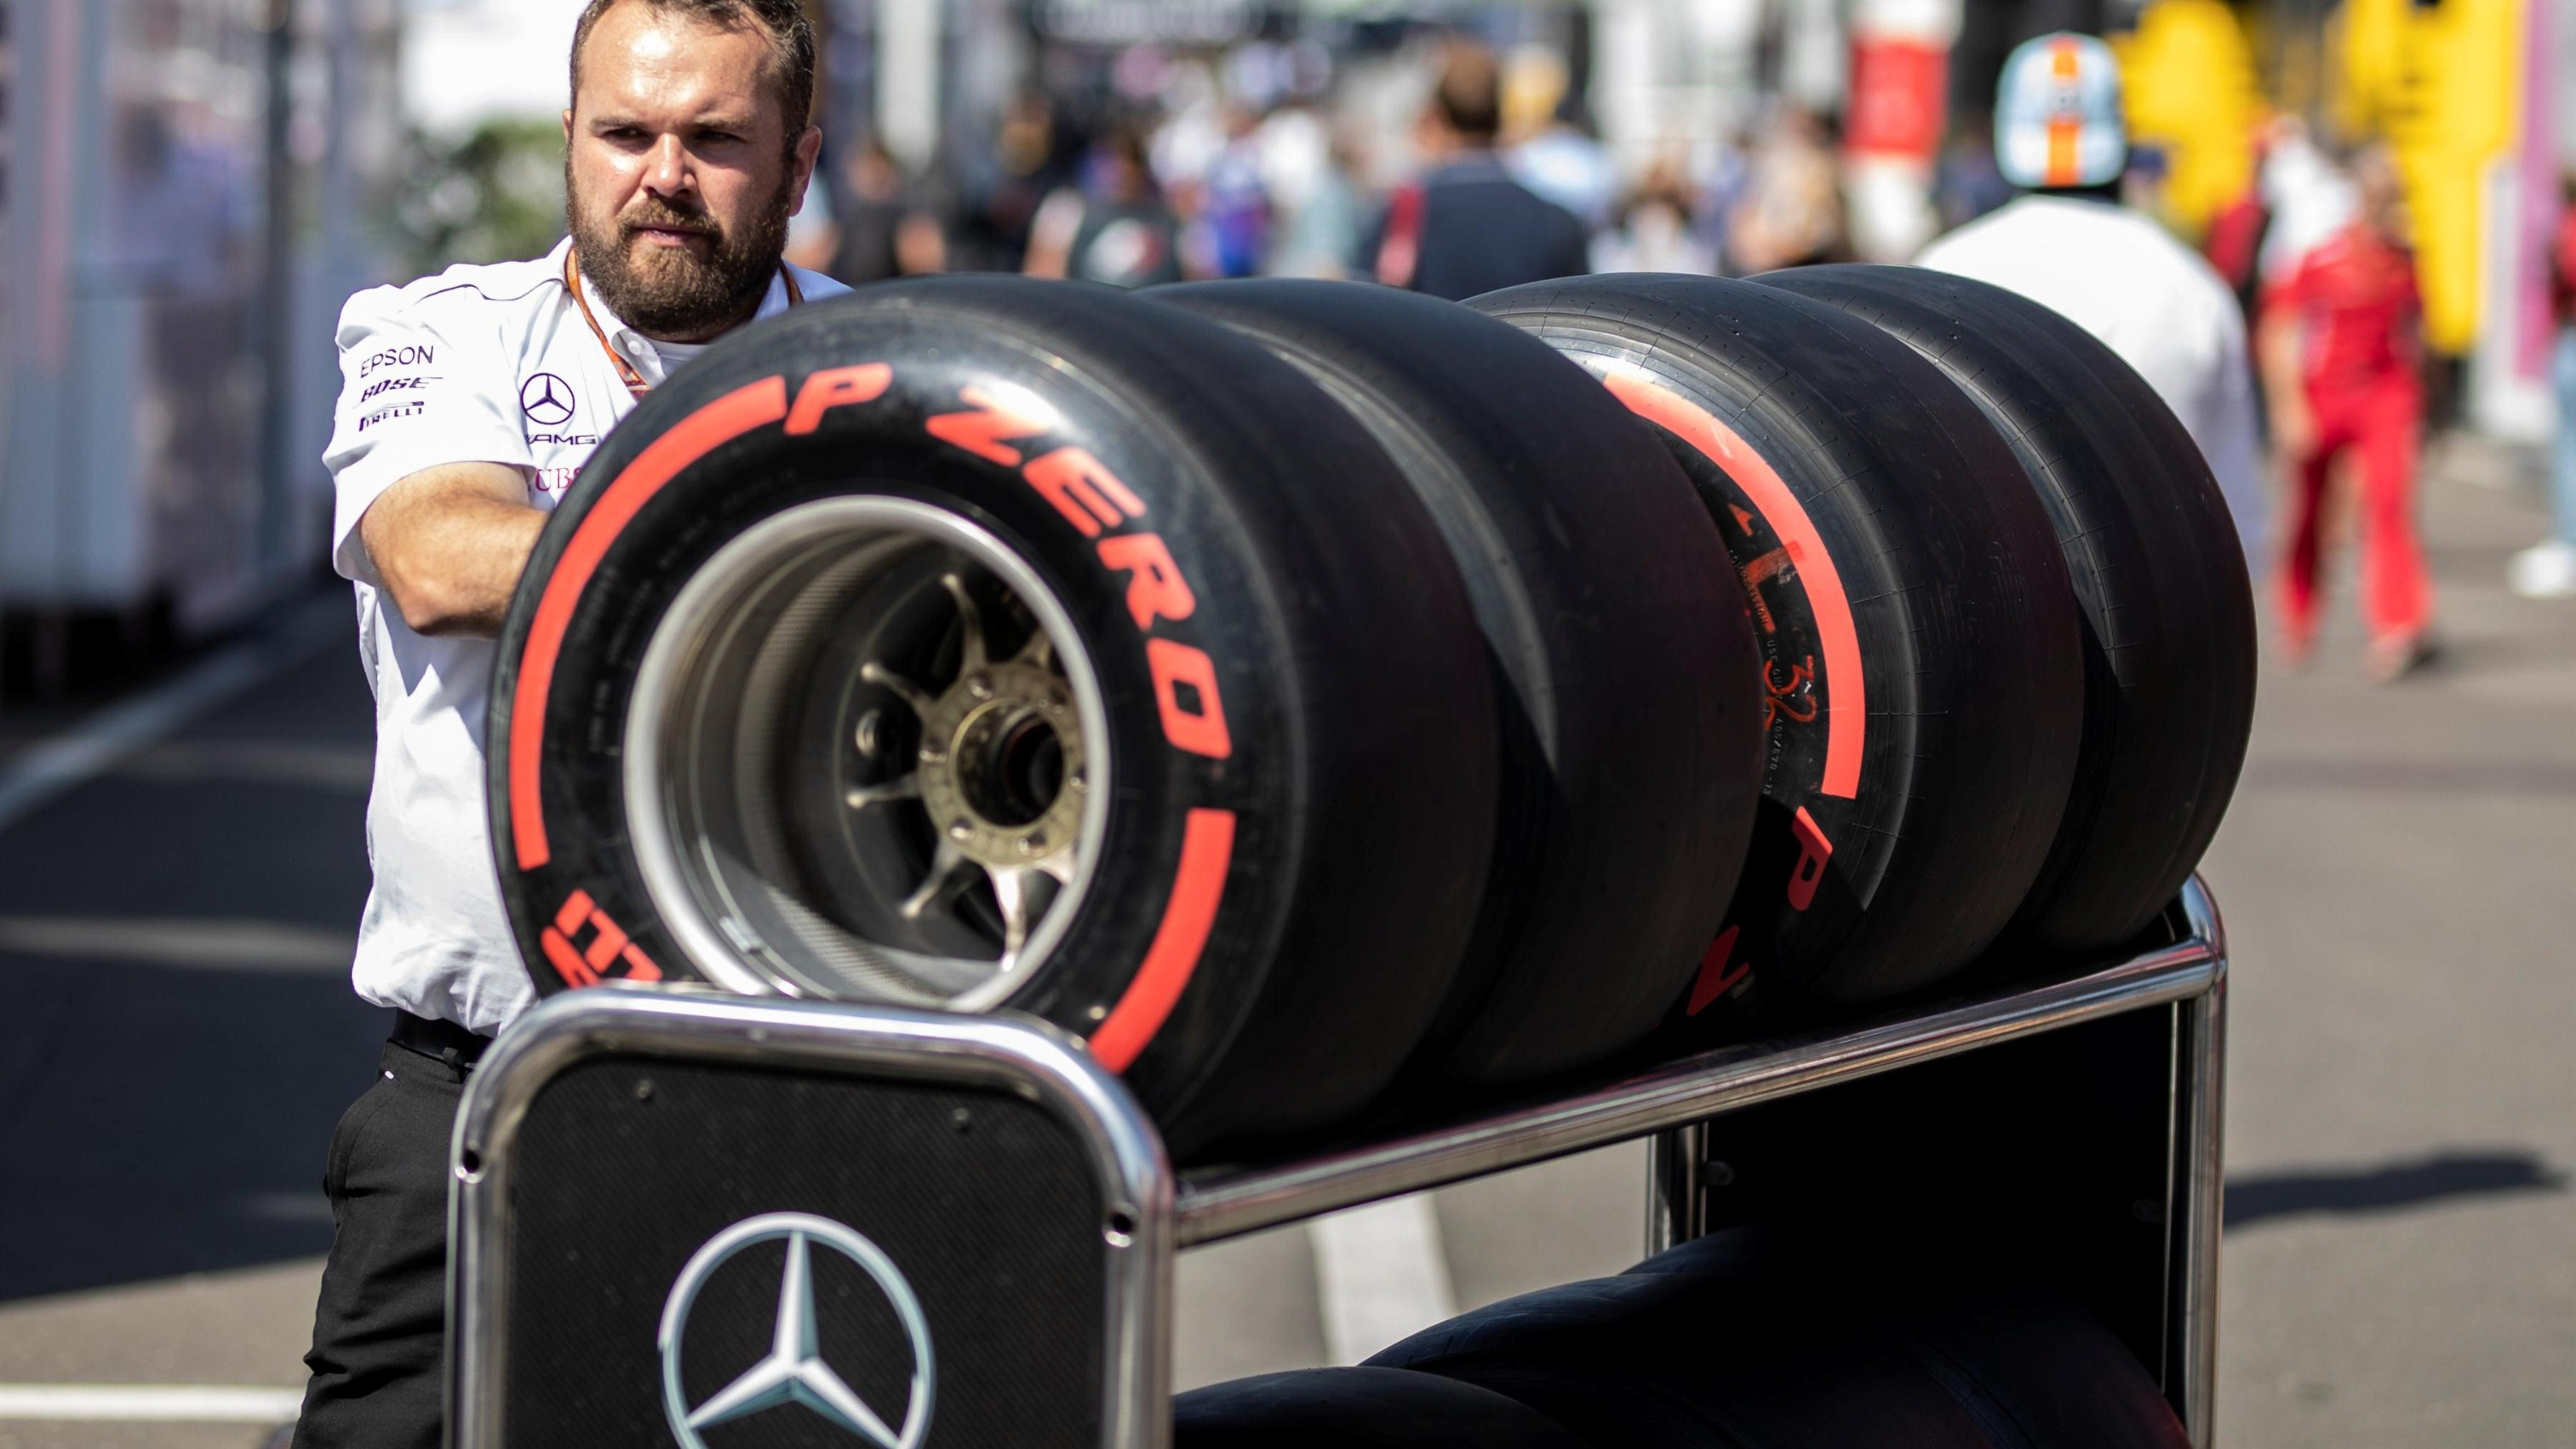 Mercedes F1 Boss Claims Ferrari Have The Fastest Car On The Grid